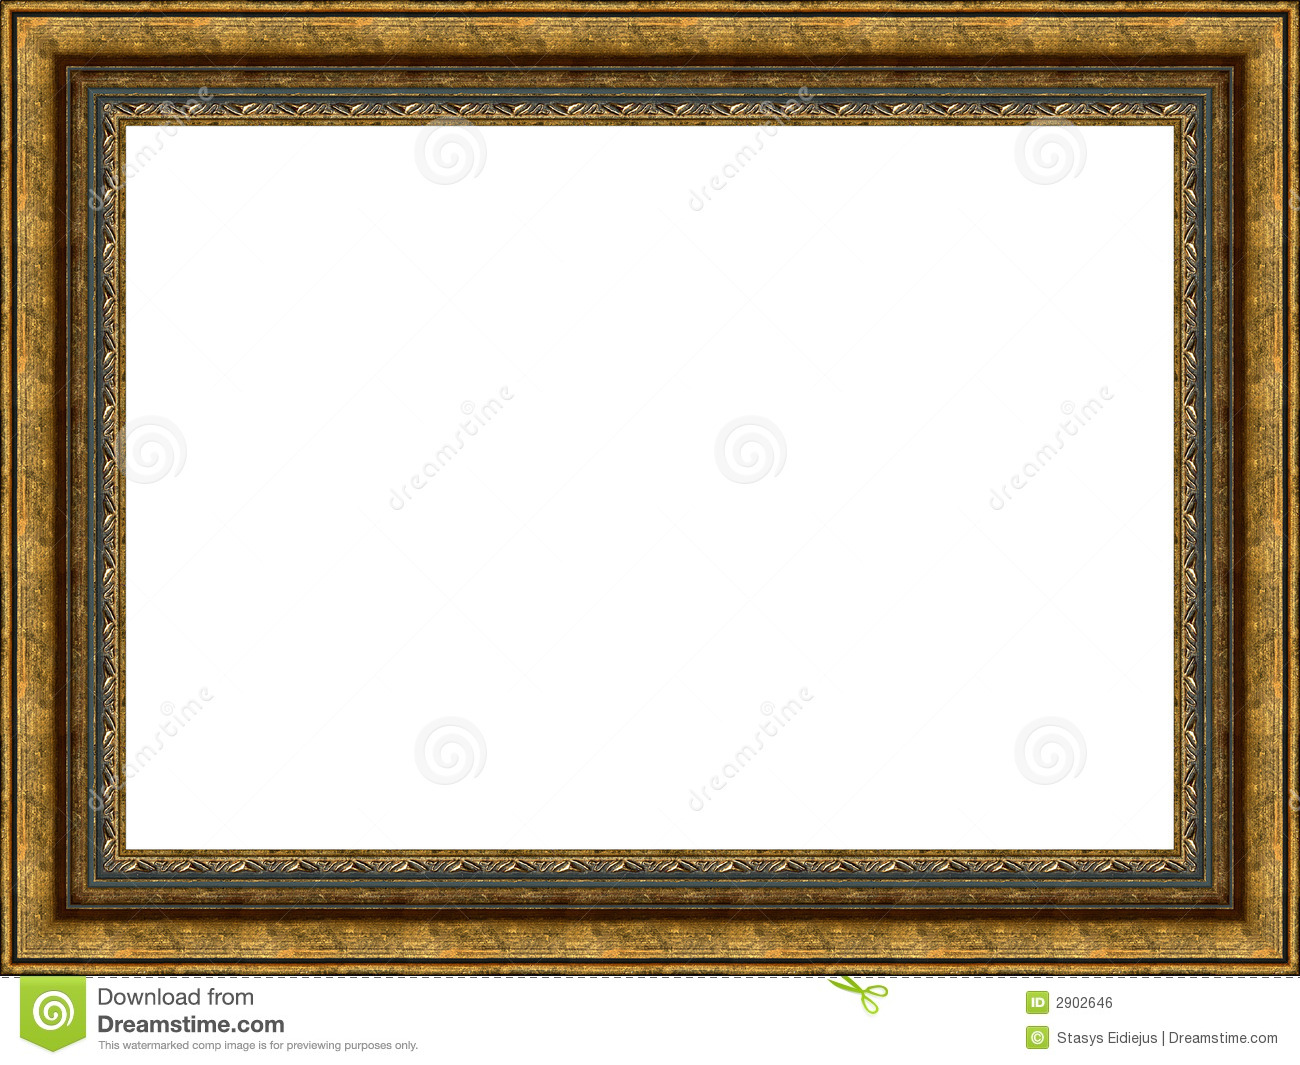 Old wooden frame stock photo. Image of border, pattern - 2902646